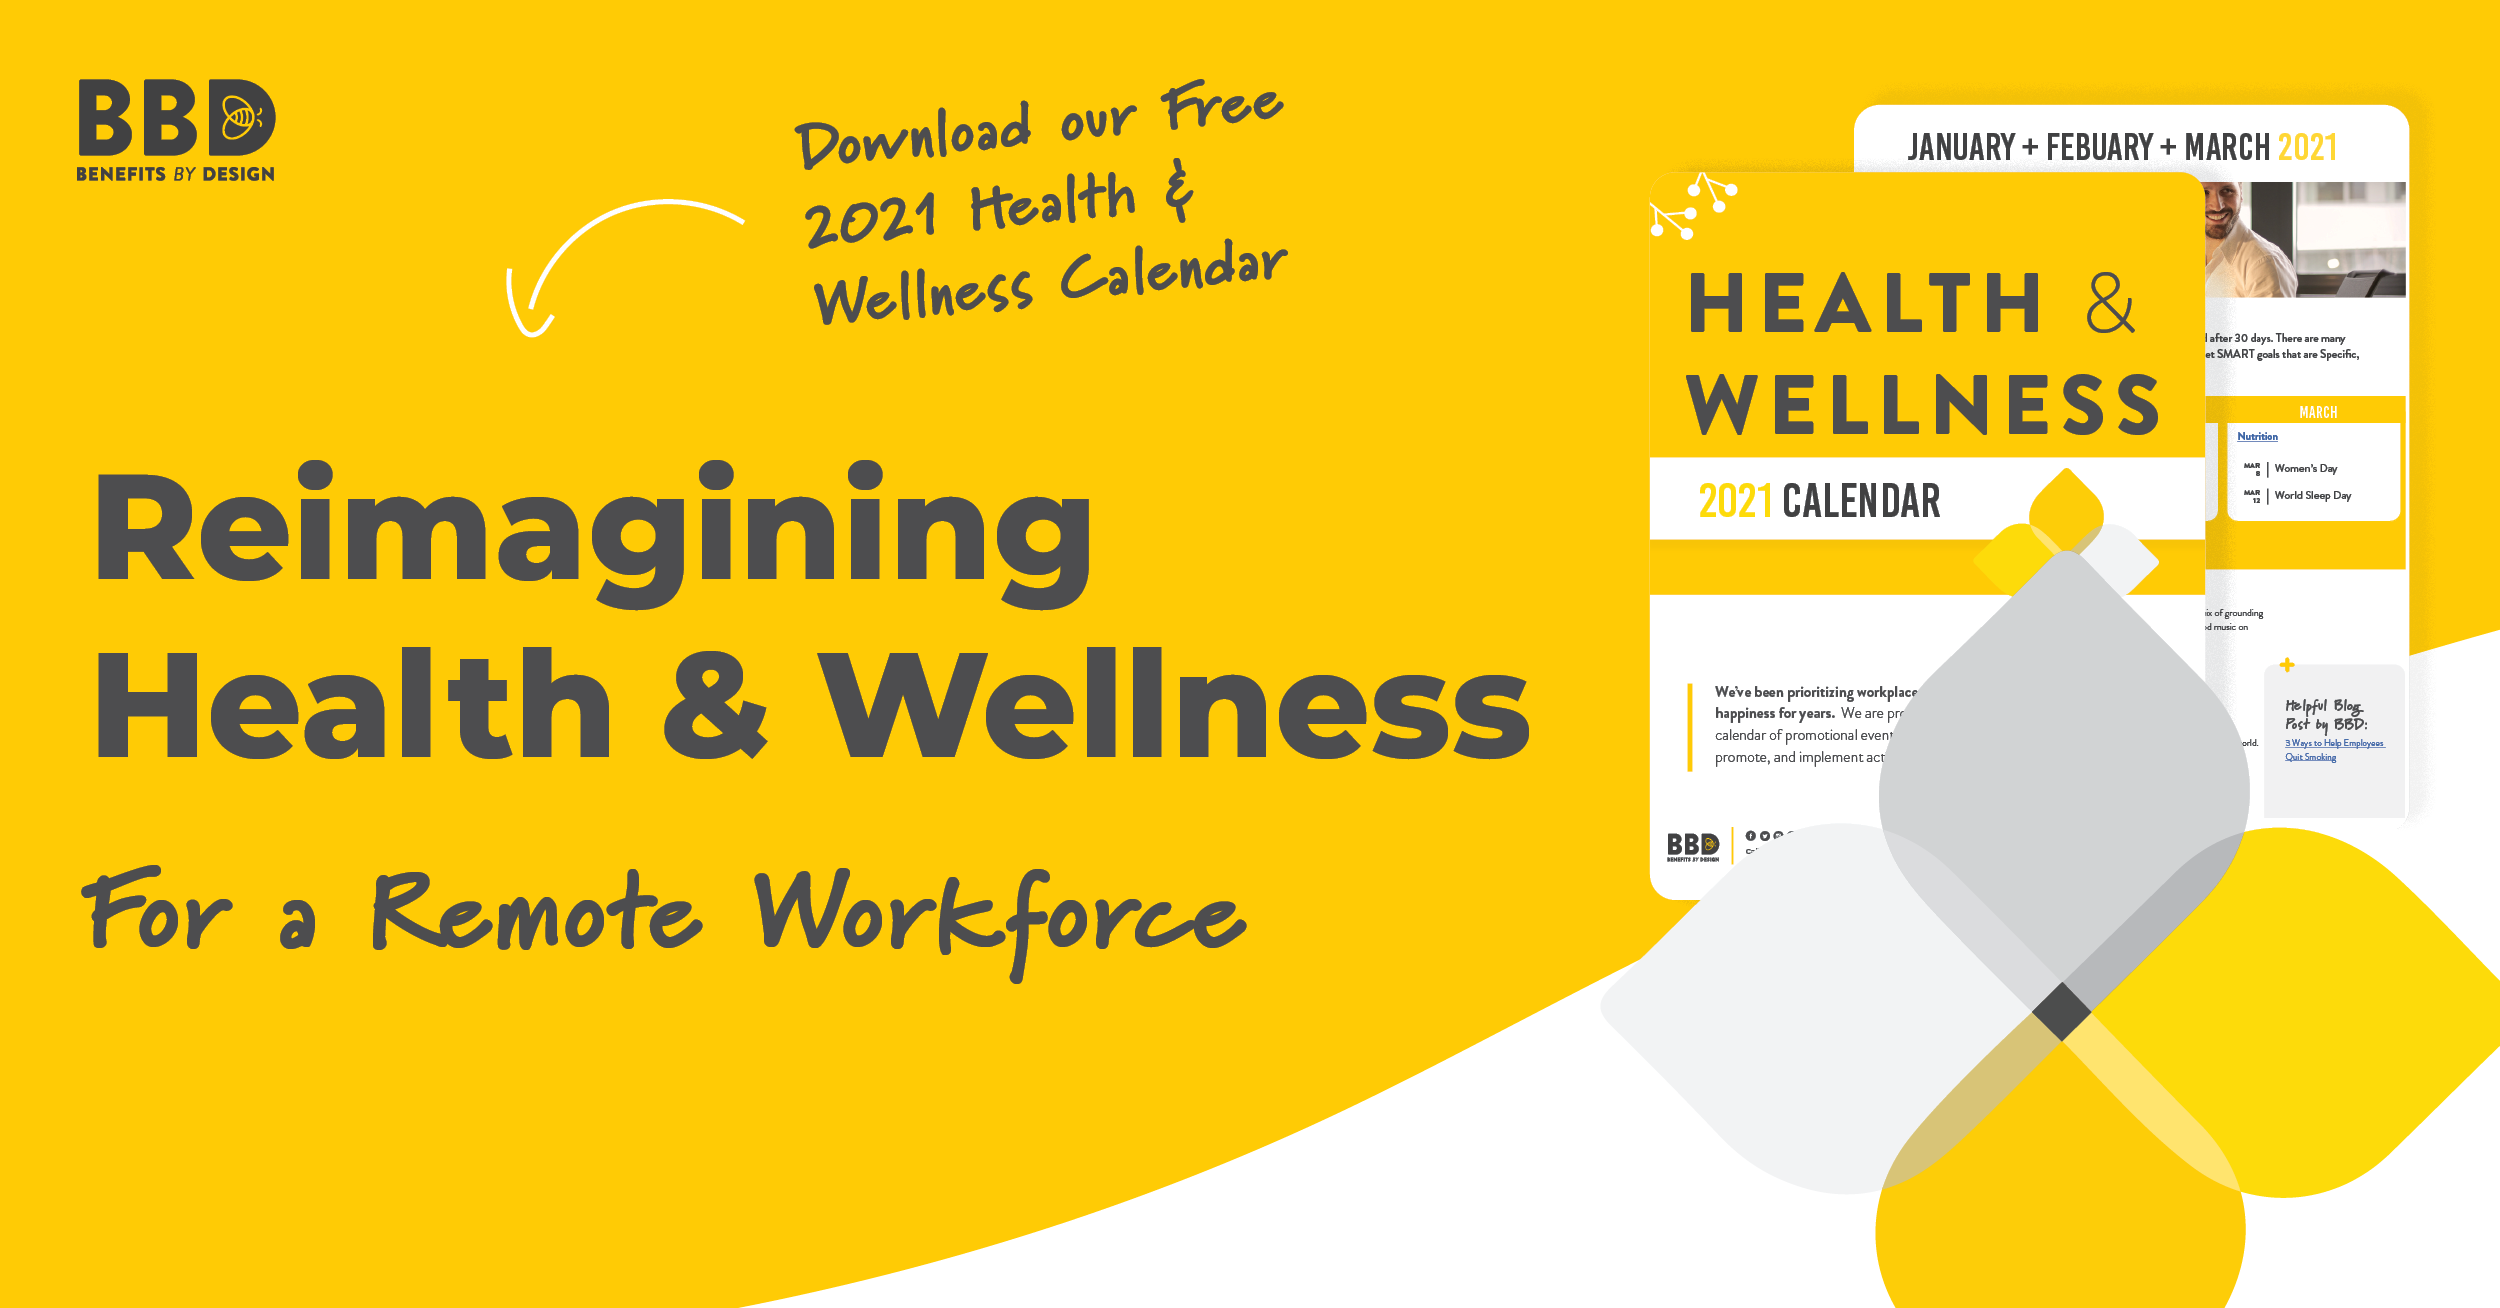 Reimagining Health & Wellness for a Remote Workforce | Images of Health and Wellness Calendar | Benefits by Design